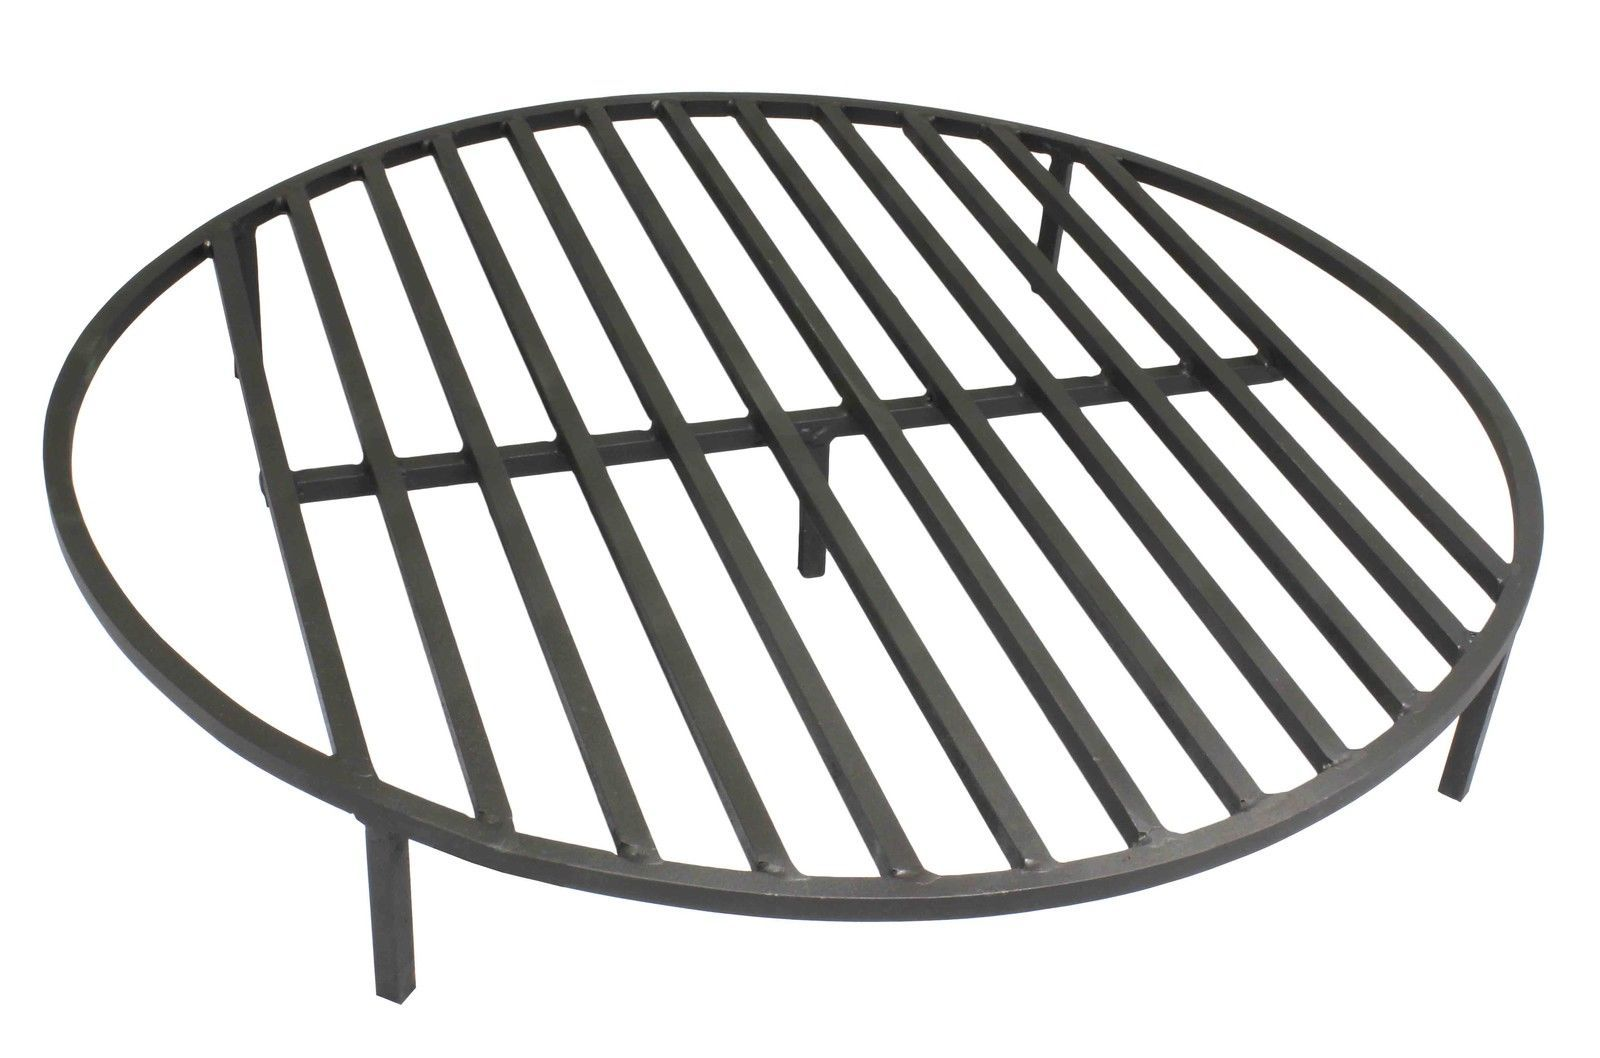 Round Fire Pit Grate 30 Heavy Duty Grill Cooking Campfire Camp Ring 1 2 Steel Fire Pit Grill Grate Fire Pit Cooking Fire Pit Grate